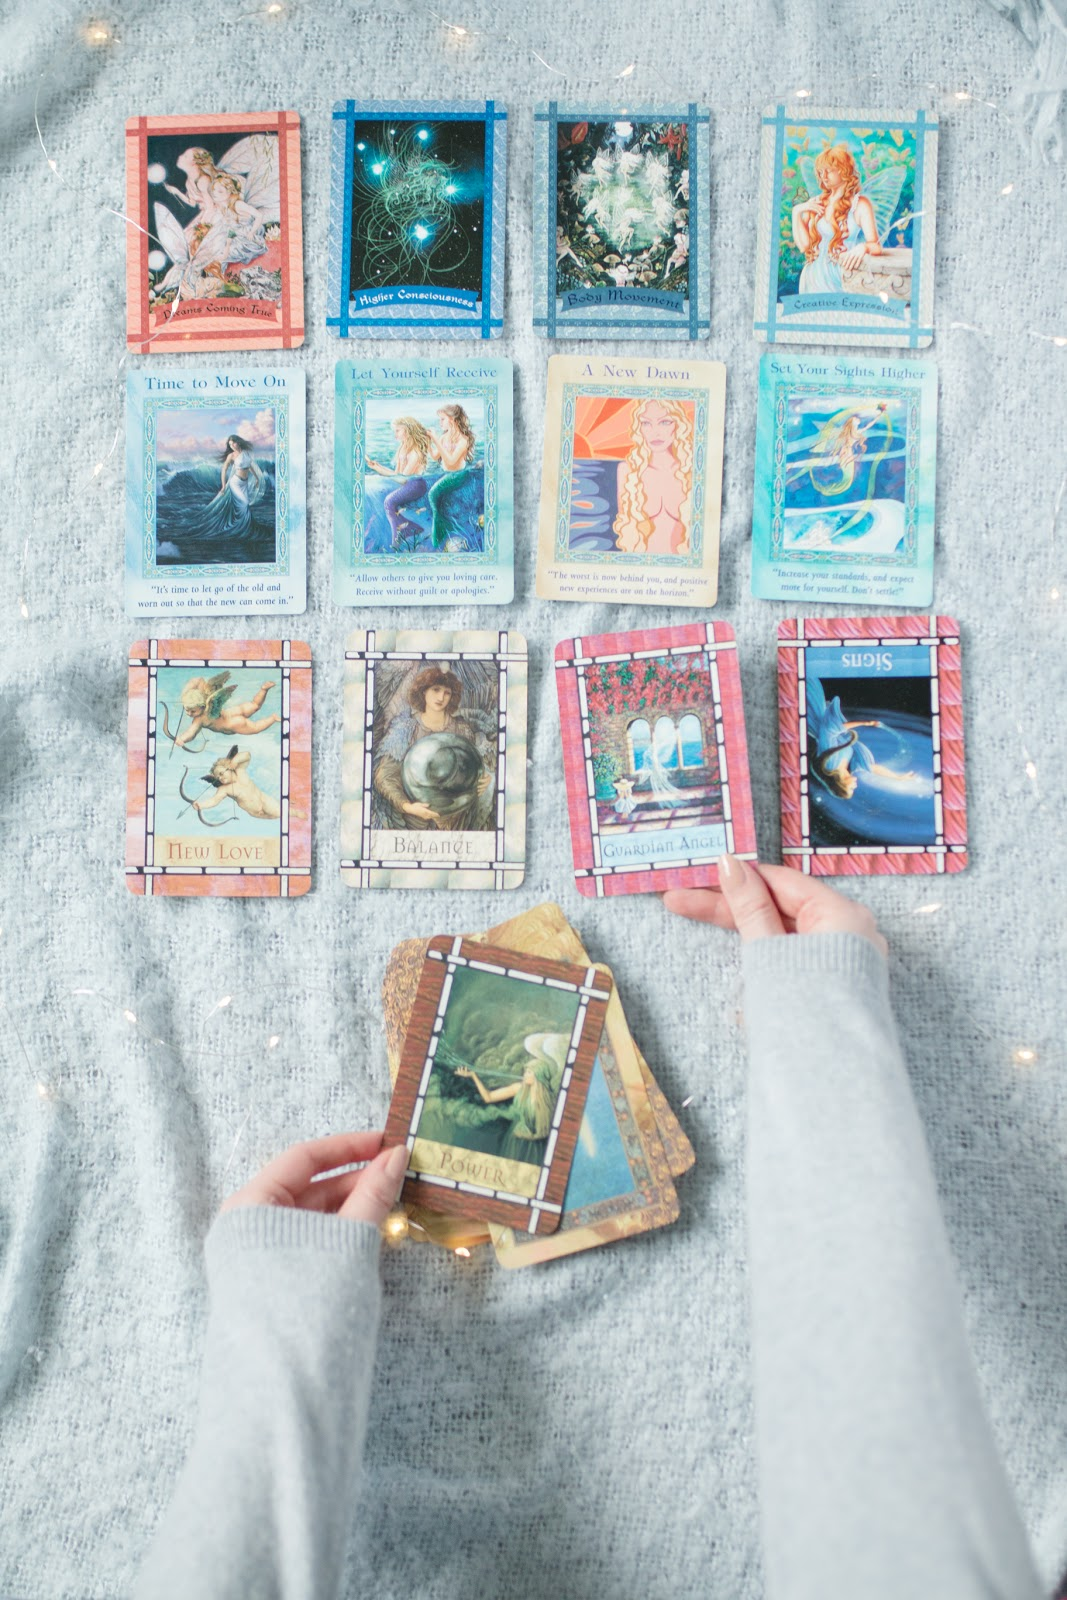 LET'S TALK ABOUT CARD READINGS